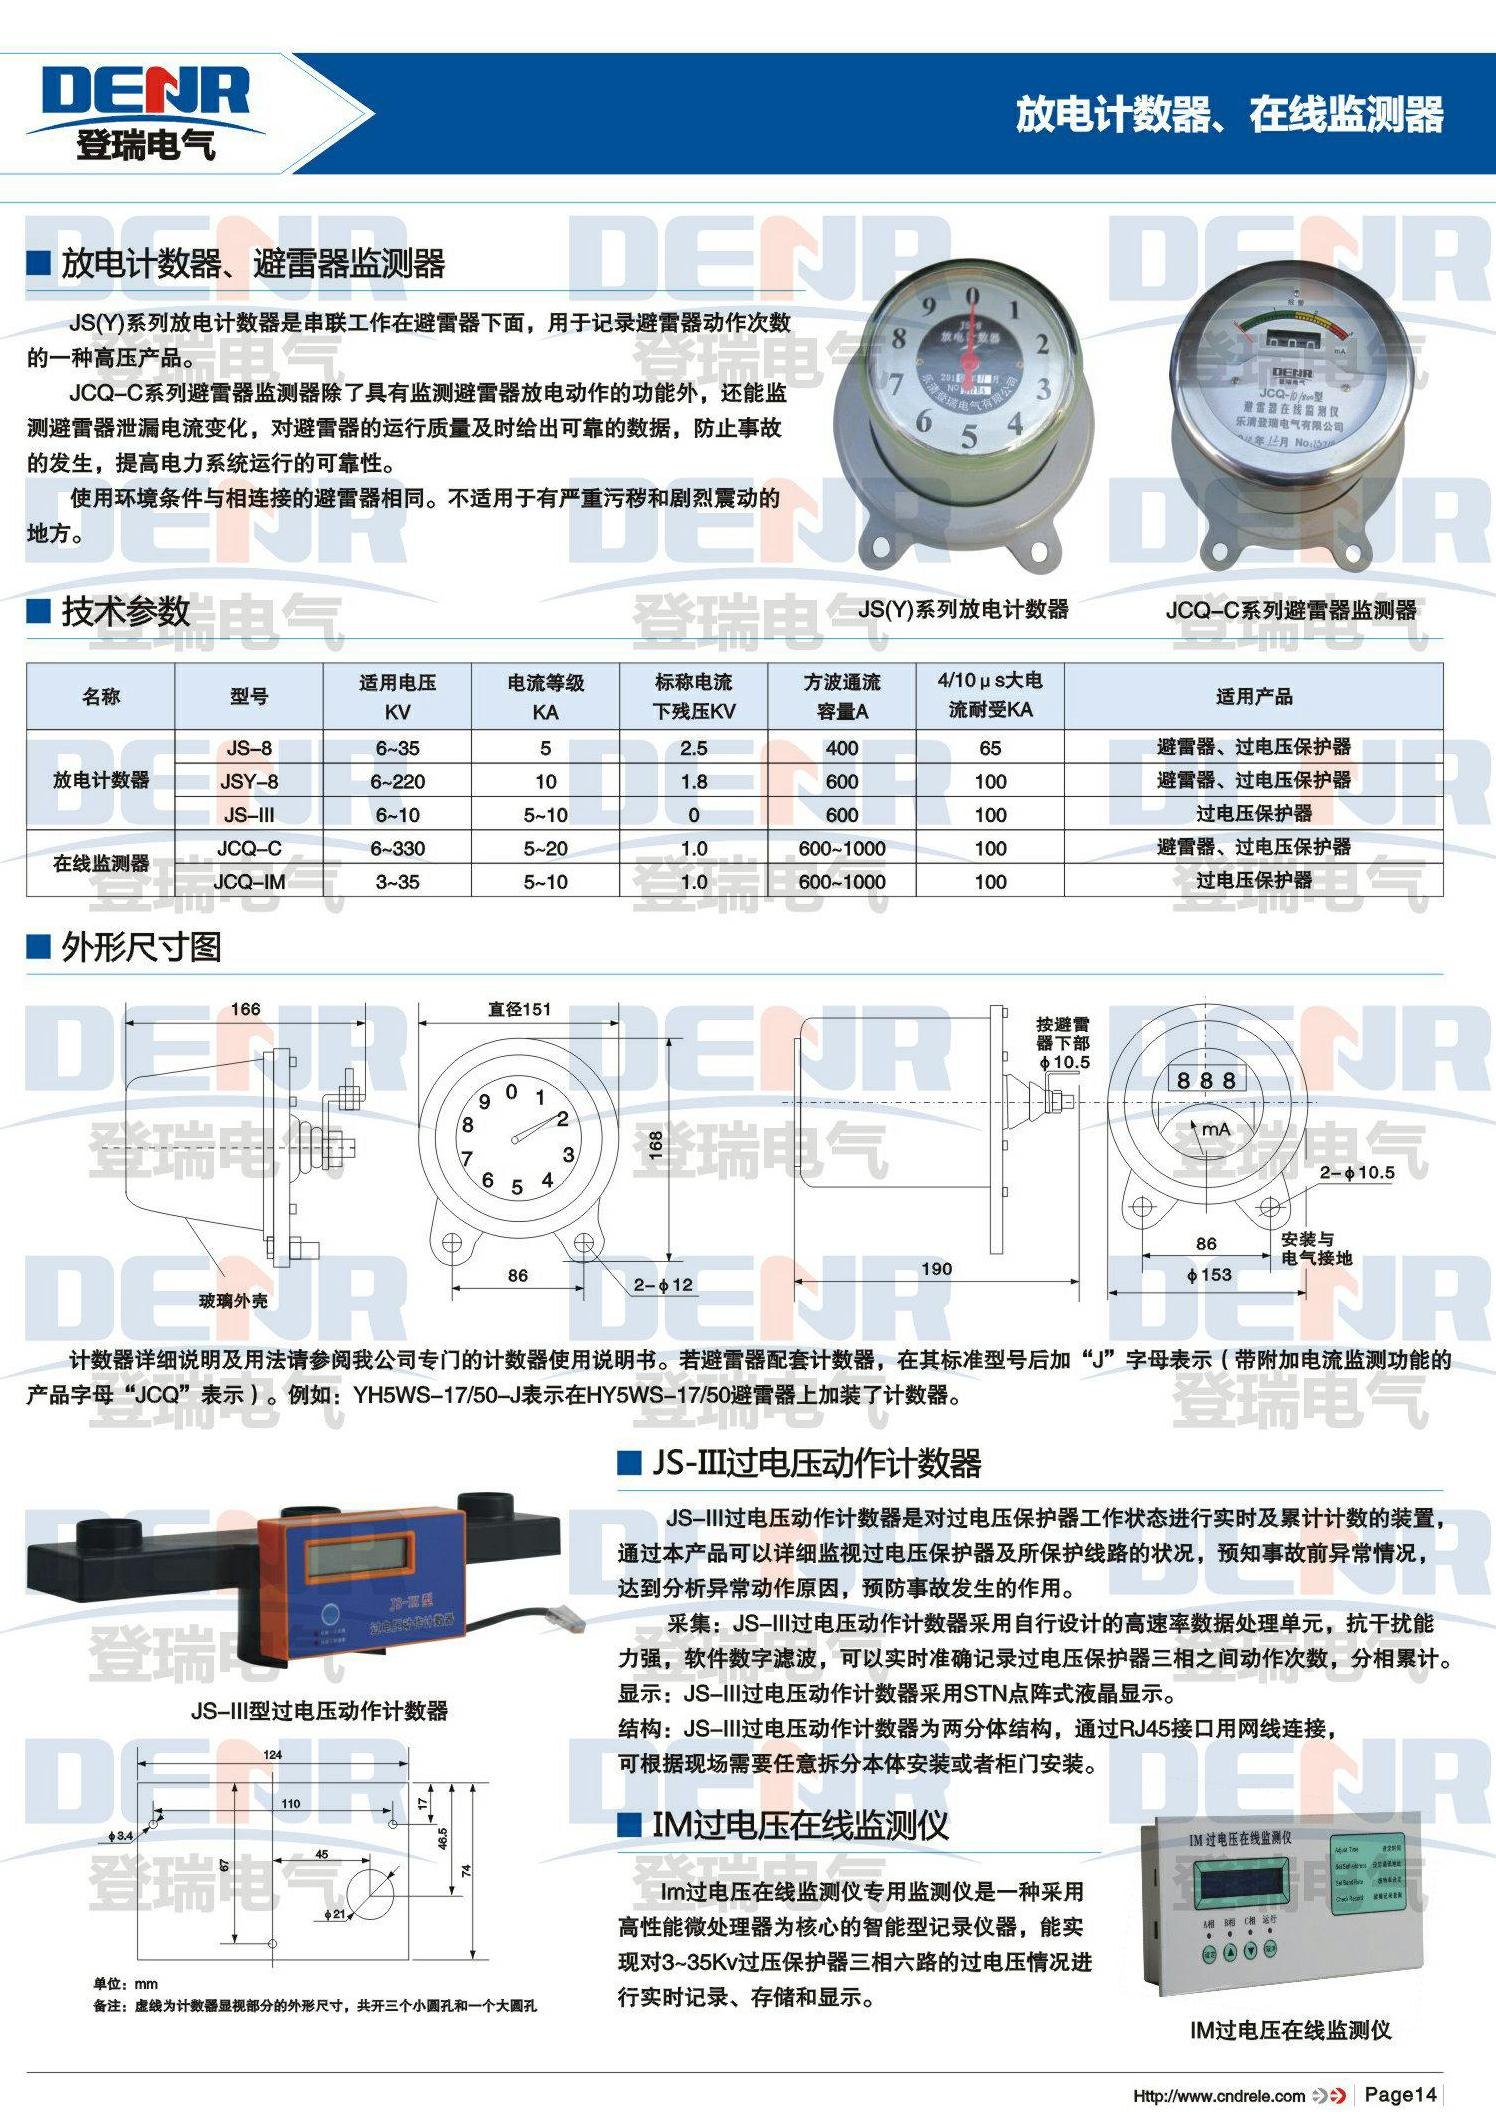 Sample DR-14 (discharge counter - on-line monitoring devices)